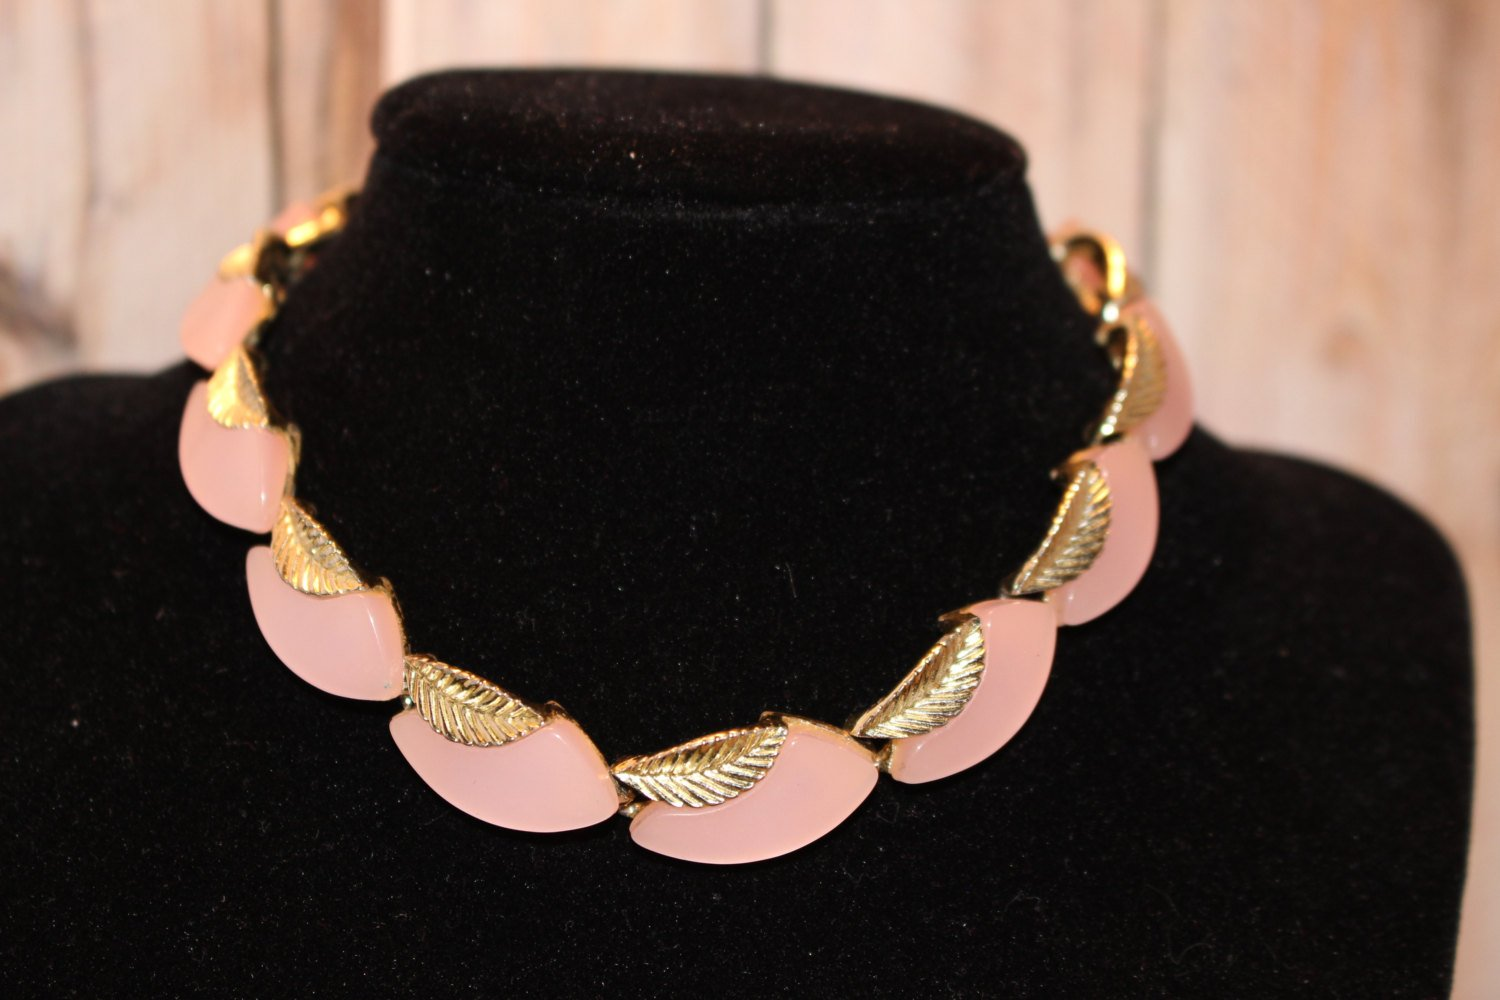 Vintage Thermoset Pink Lucite and Silver Tone Leaf Necklace - Moonglow - 1950's